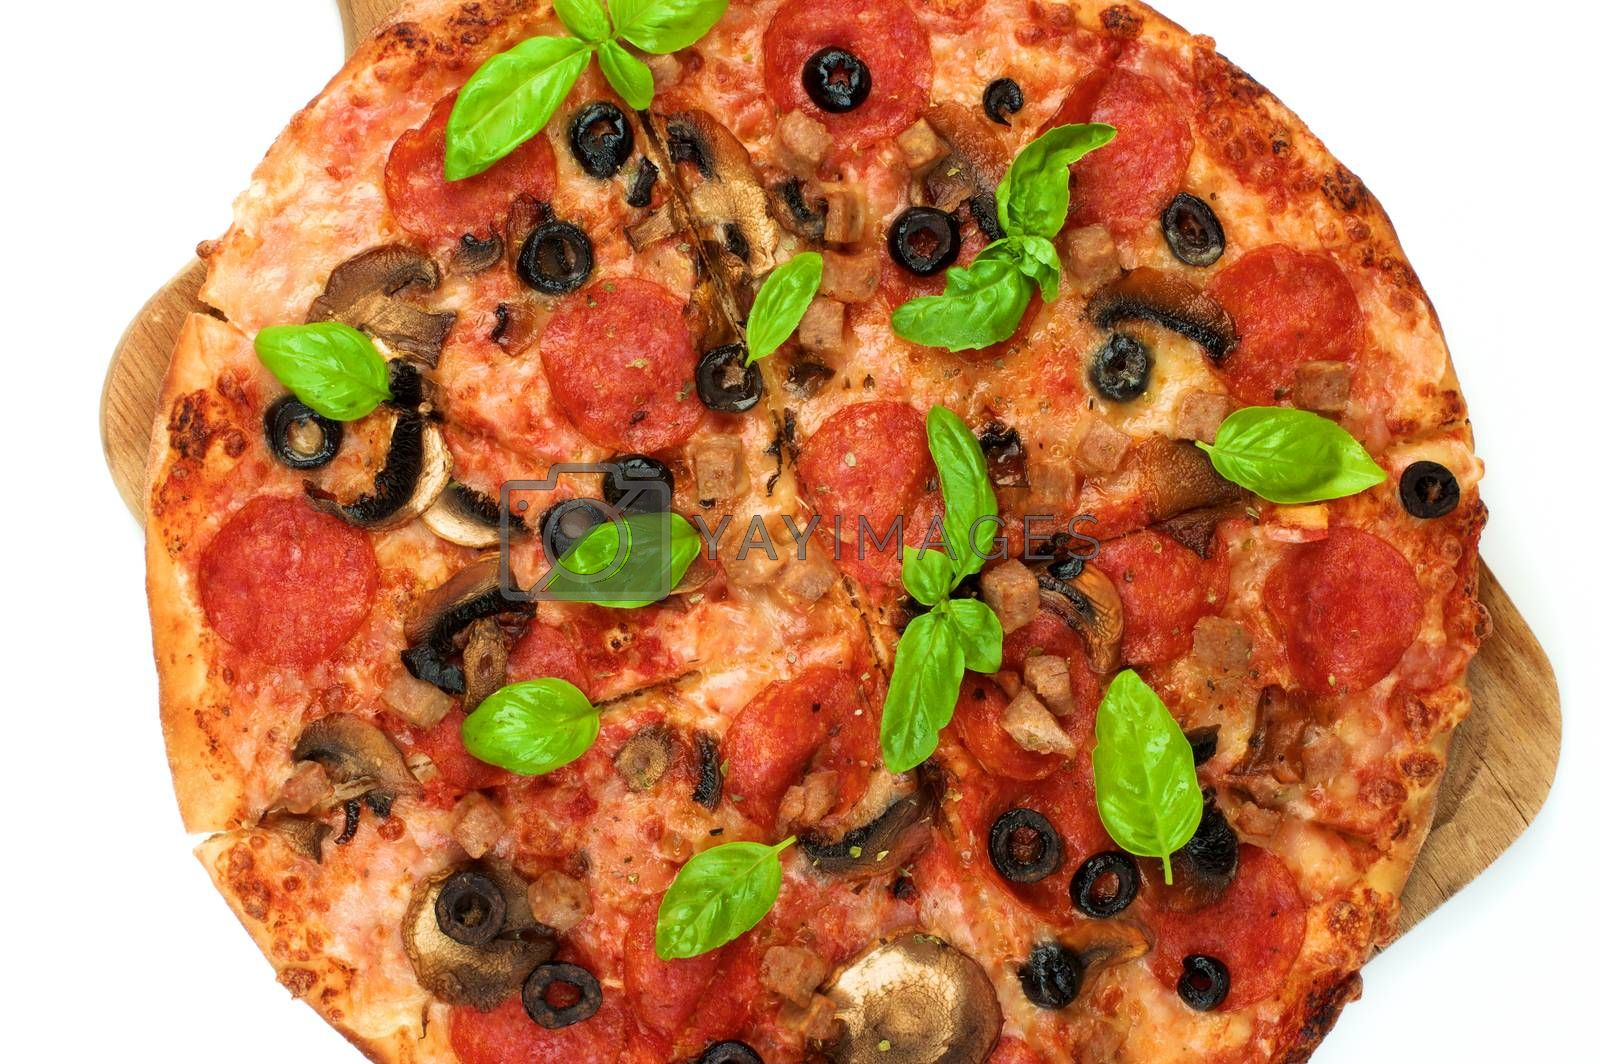 Homemade Pepperoni Pizza with Mushrooms, Black Olives, Ham and Basil on Wooden Board Cross Section on White background